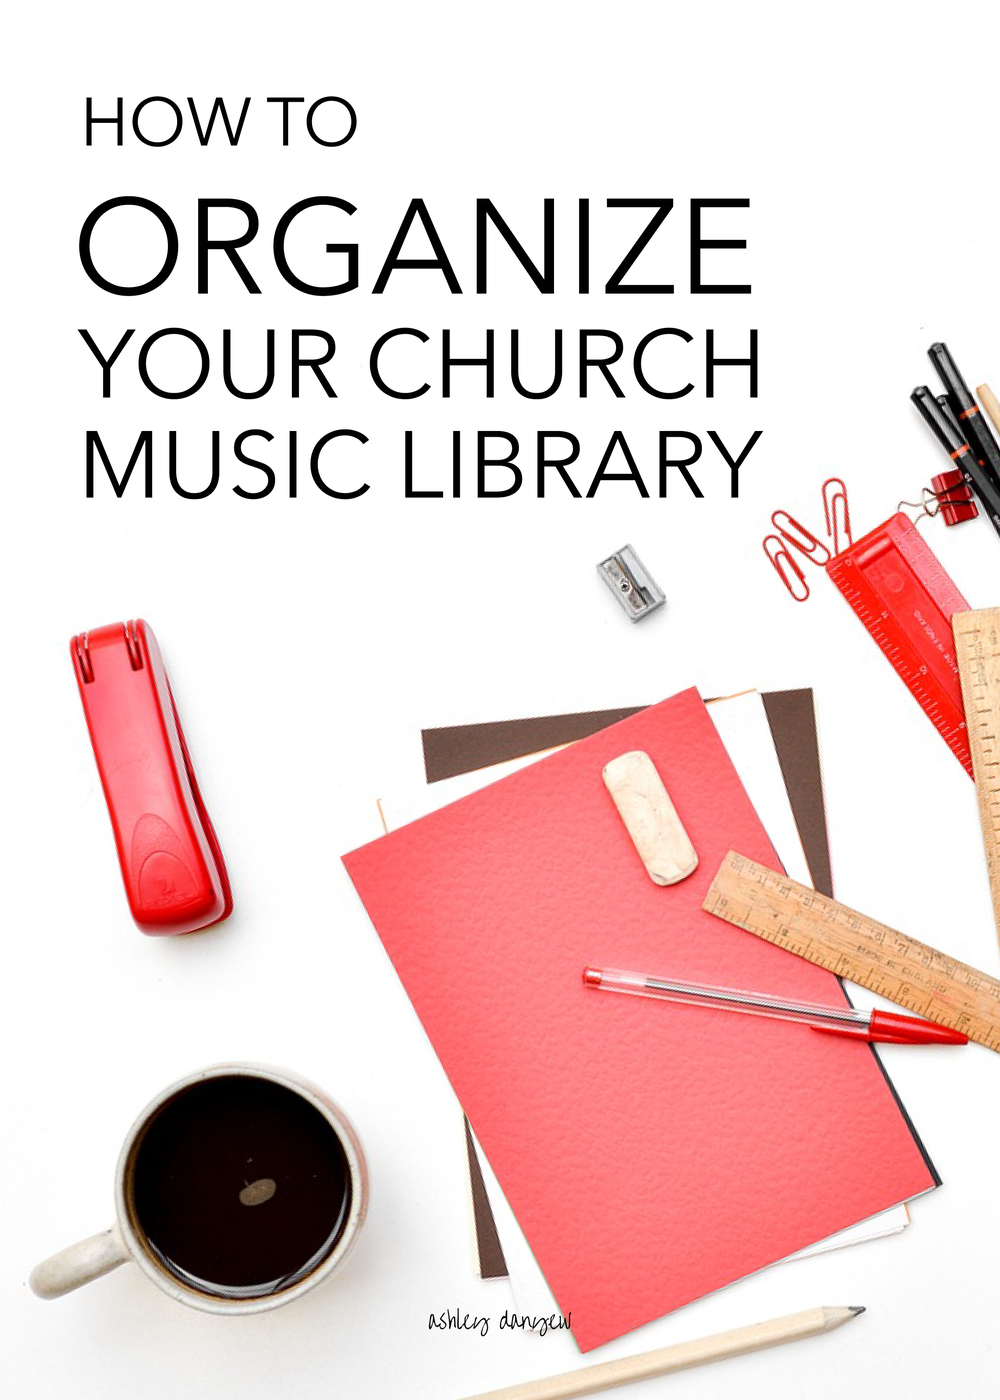 Copy of How to Organize Your Church Music Library